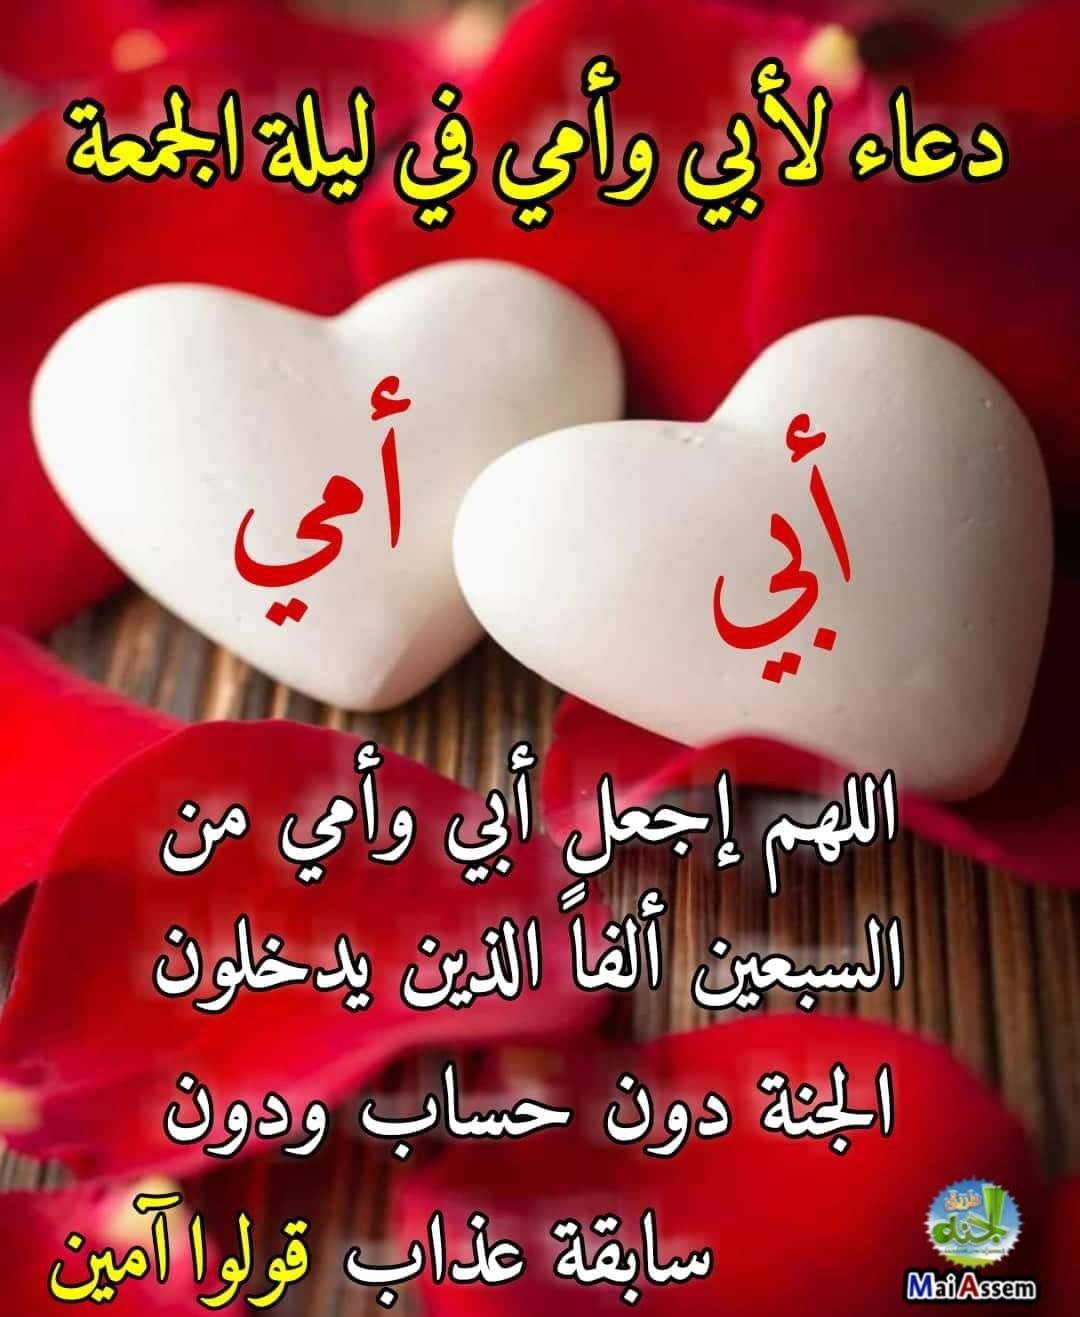 Pin By Widad On دعاء Arabic Love Quotes Islamic Quotes Daily Ritual